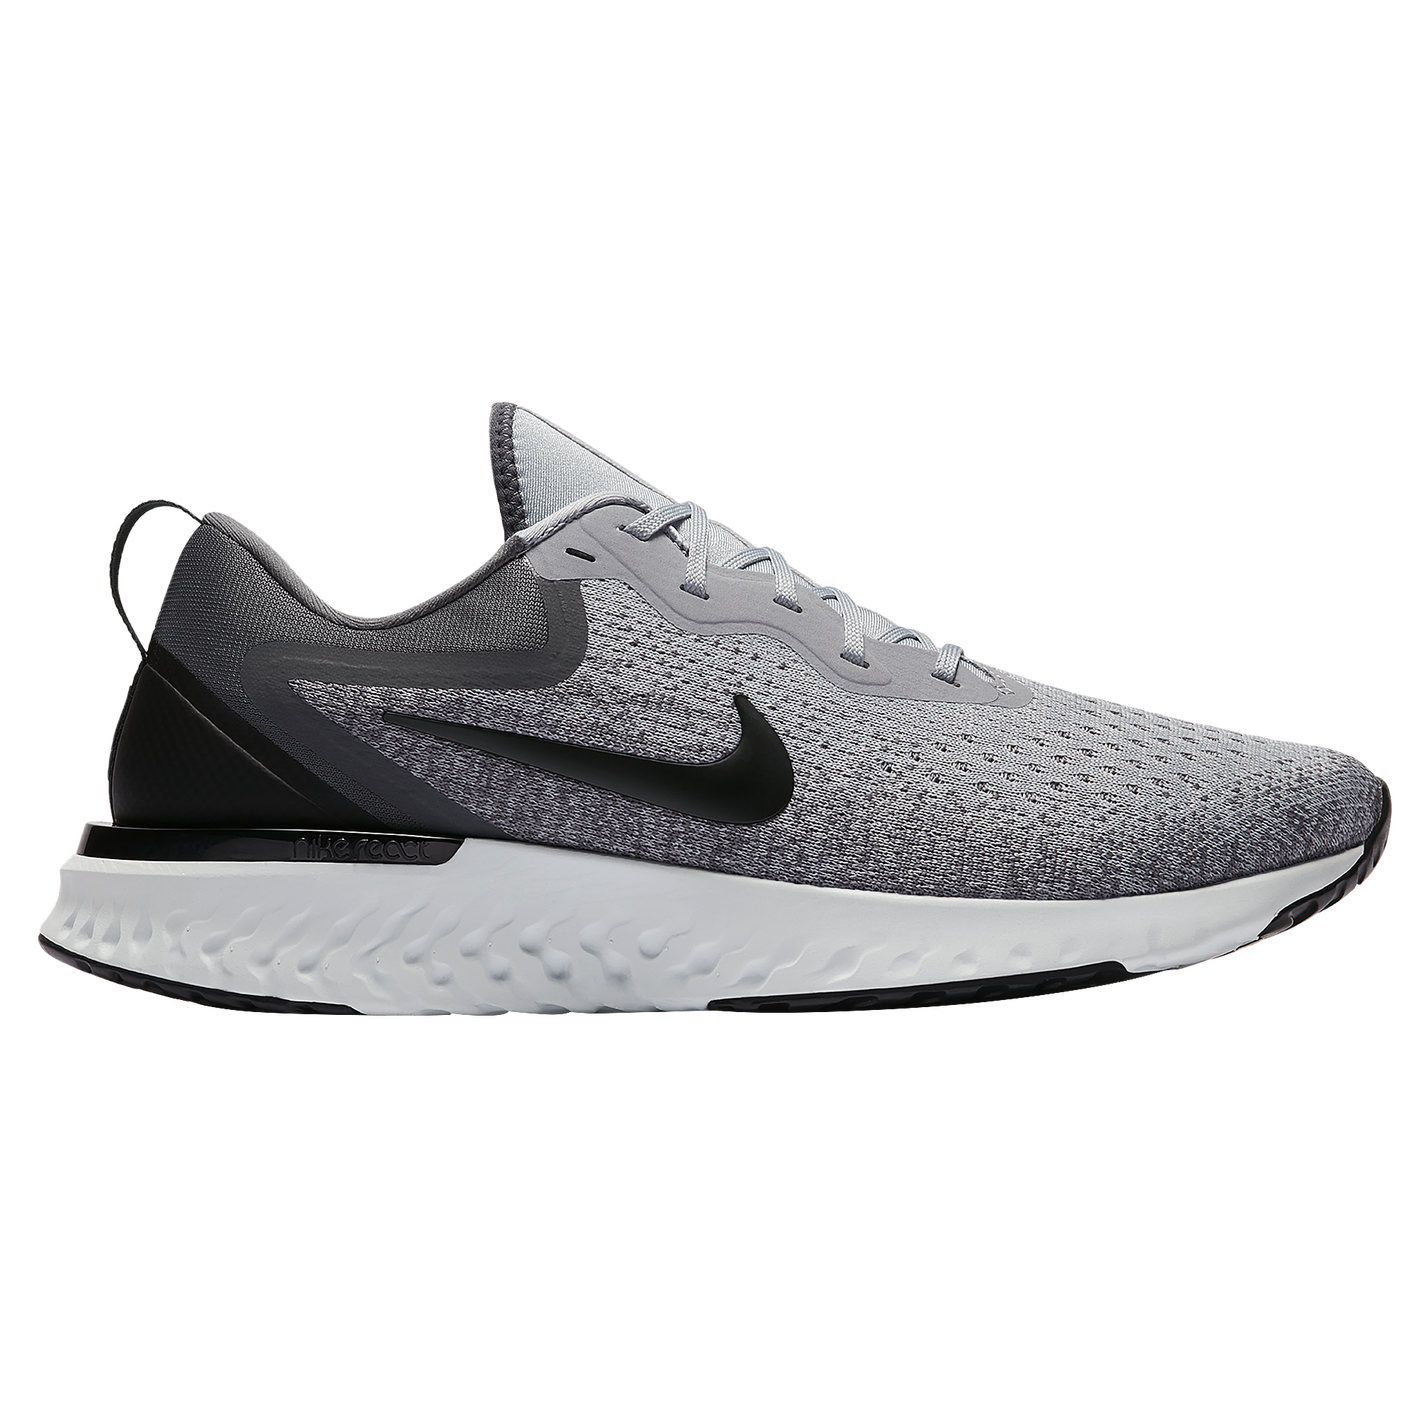 4a42277f26e01 Nike Odyssey React - Men s.  84.99 -  89.99. Product    9819003. Selected  Style  Wolf Grey Black Dark Grey Pure Platinum ...